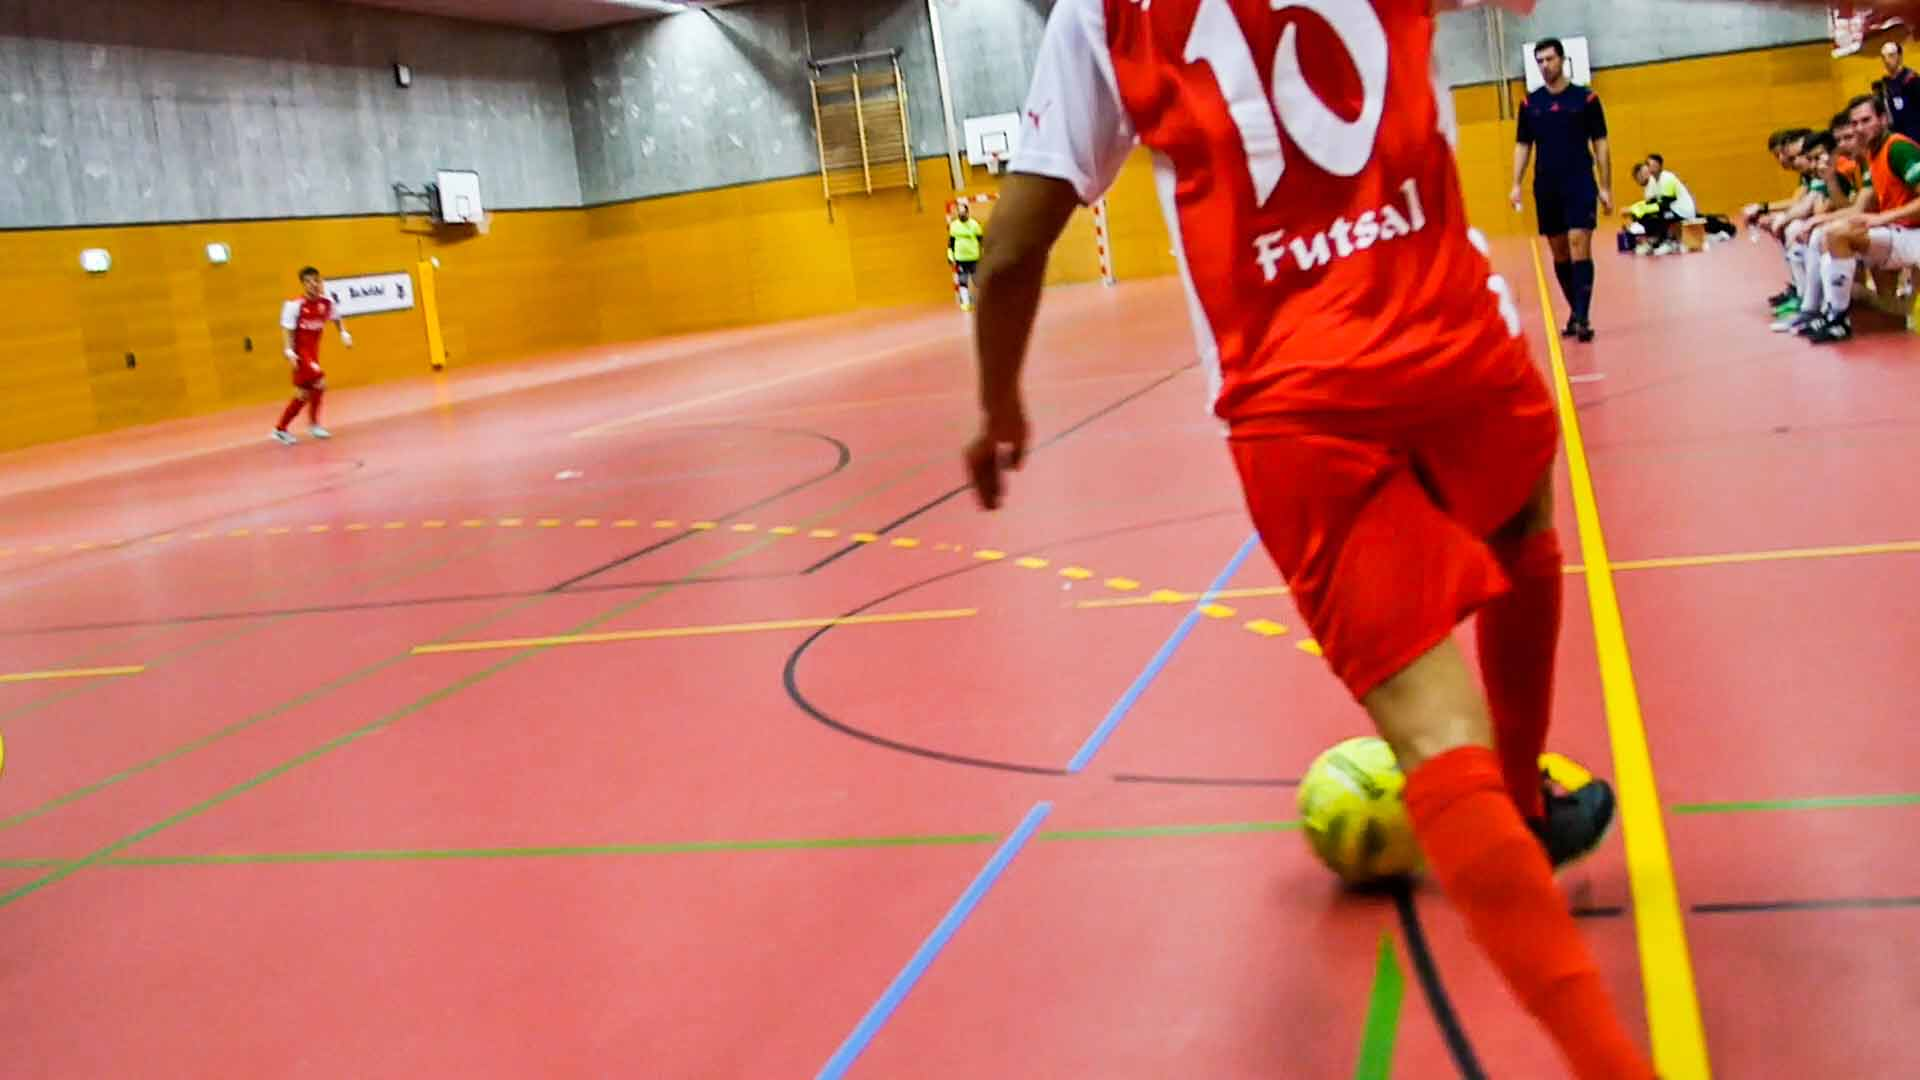 Futsal: Hallenfussball für Profis – Kick it like Ronaldo, Messi & Co